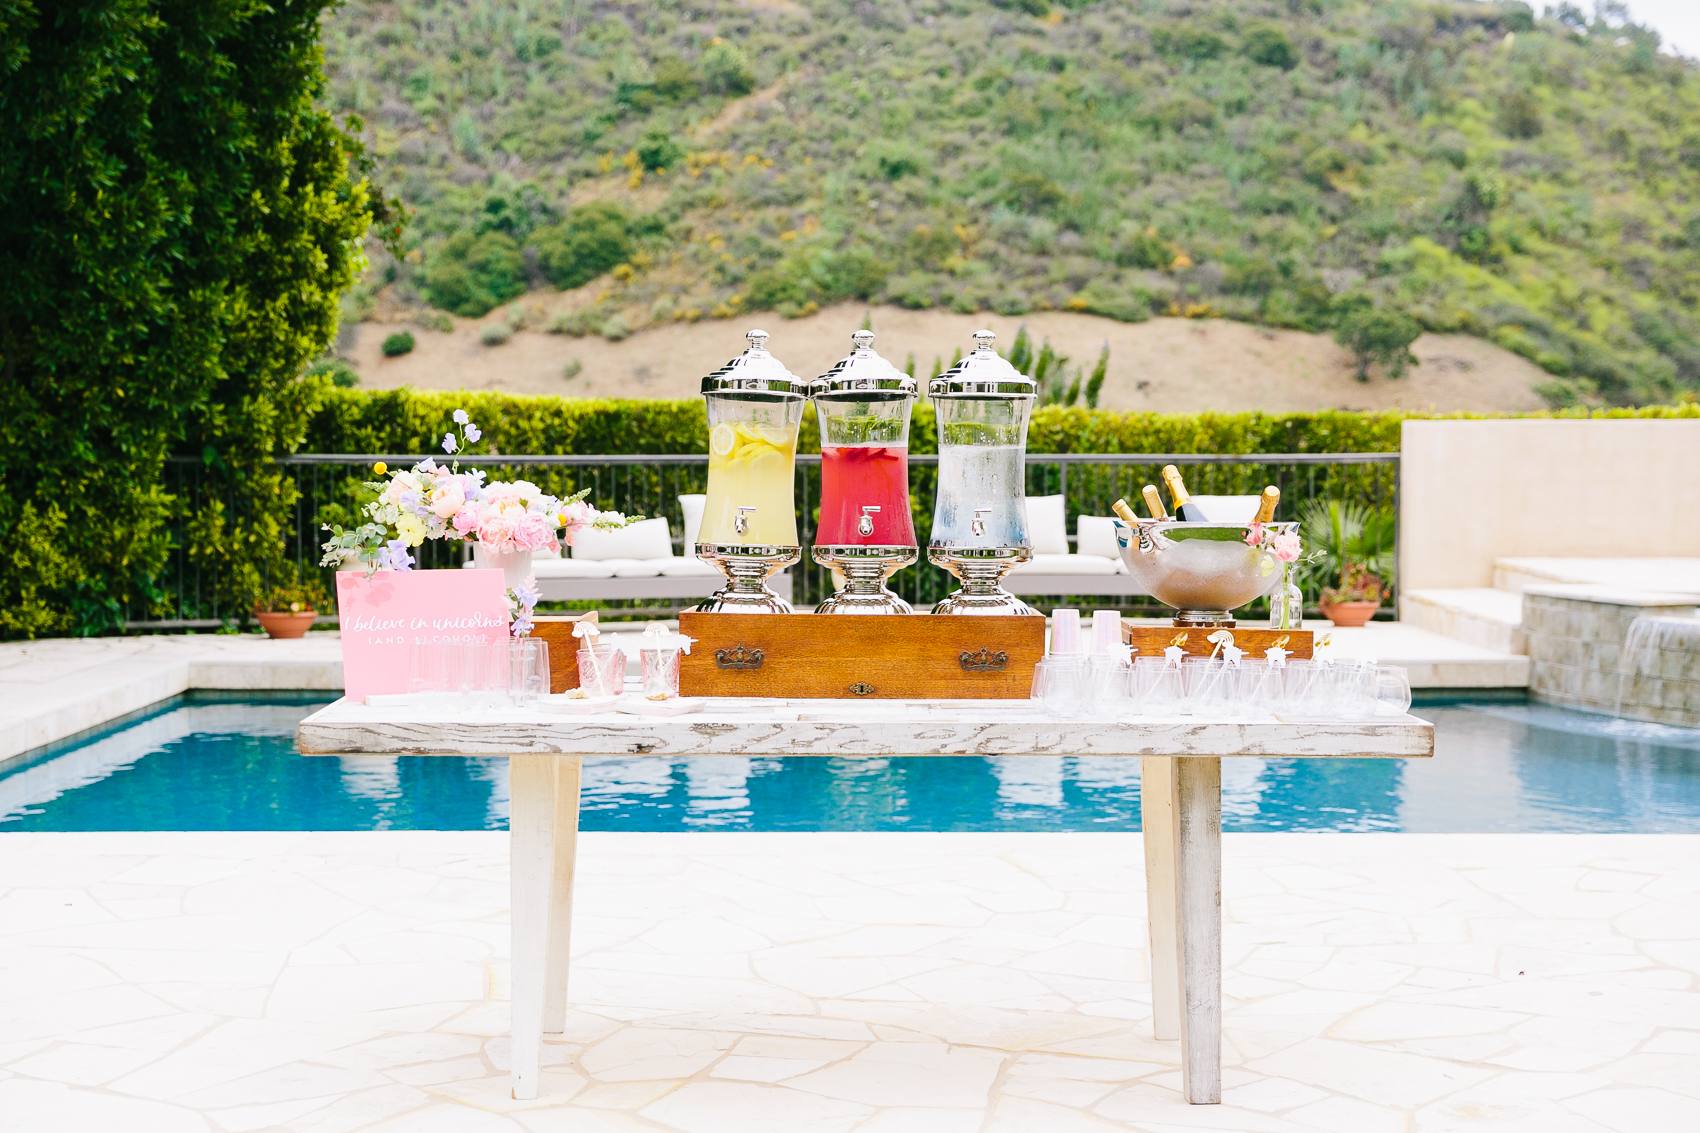 Los_Angeles_Family_Photographer_Luxury_Childrens_Party_Beverly_Hills_Unicorn_Birthday_Party-0160.jpg